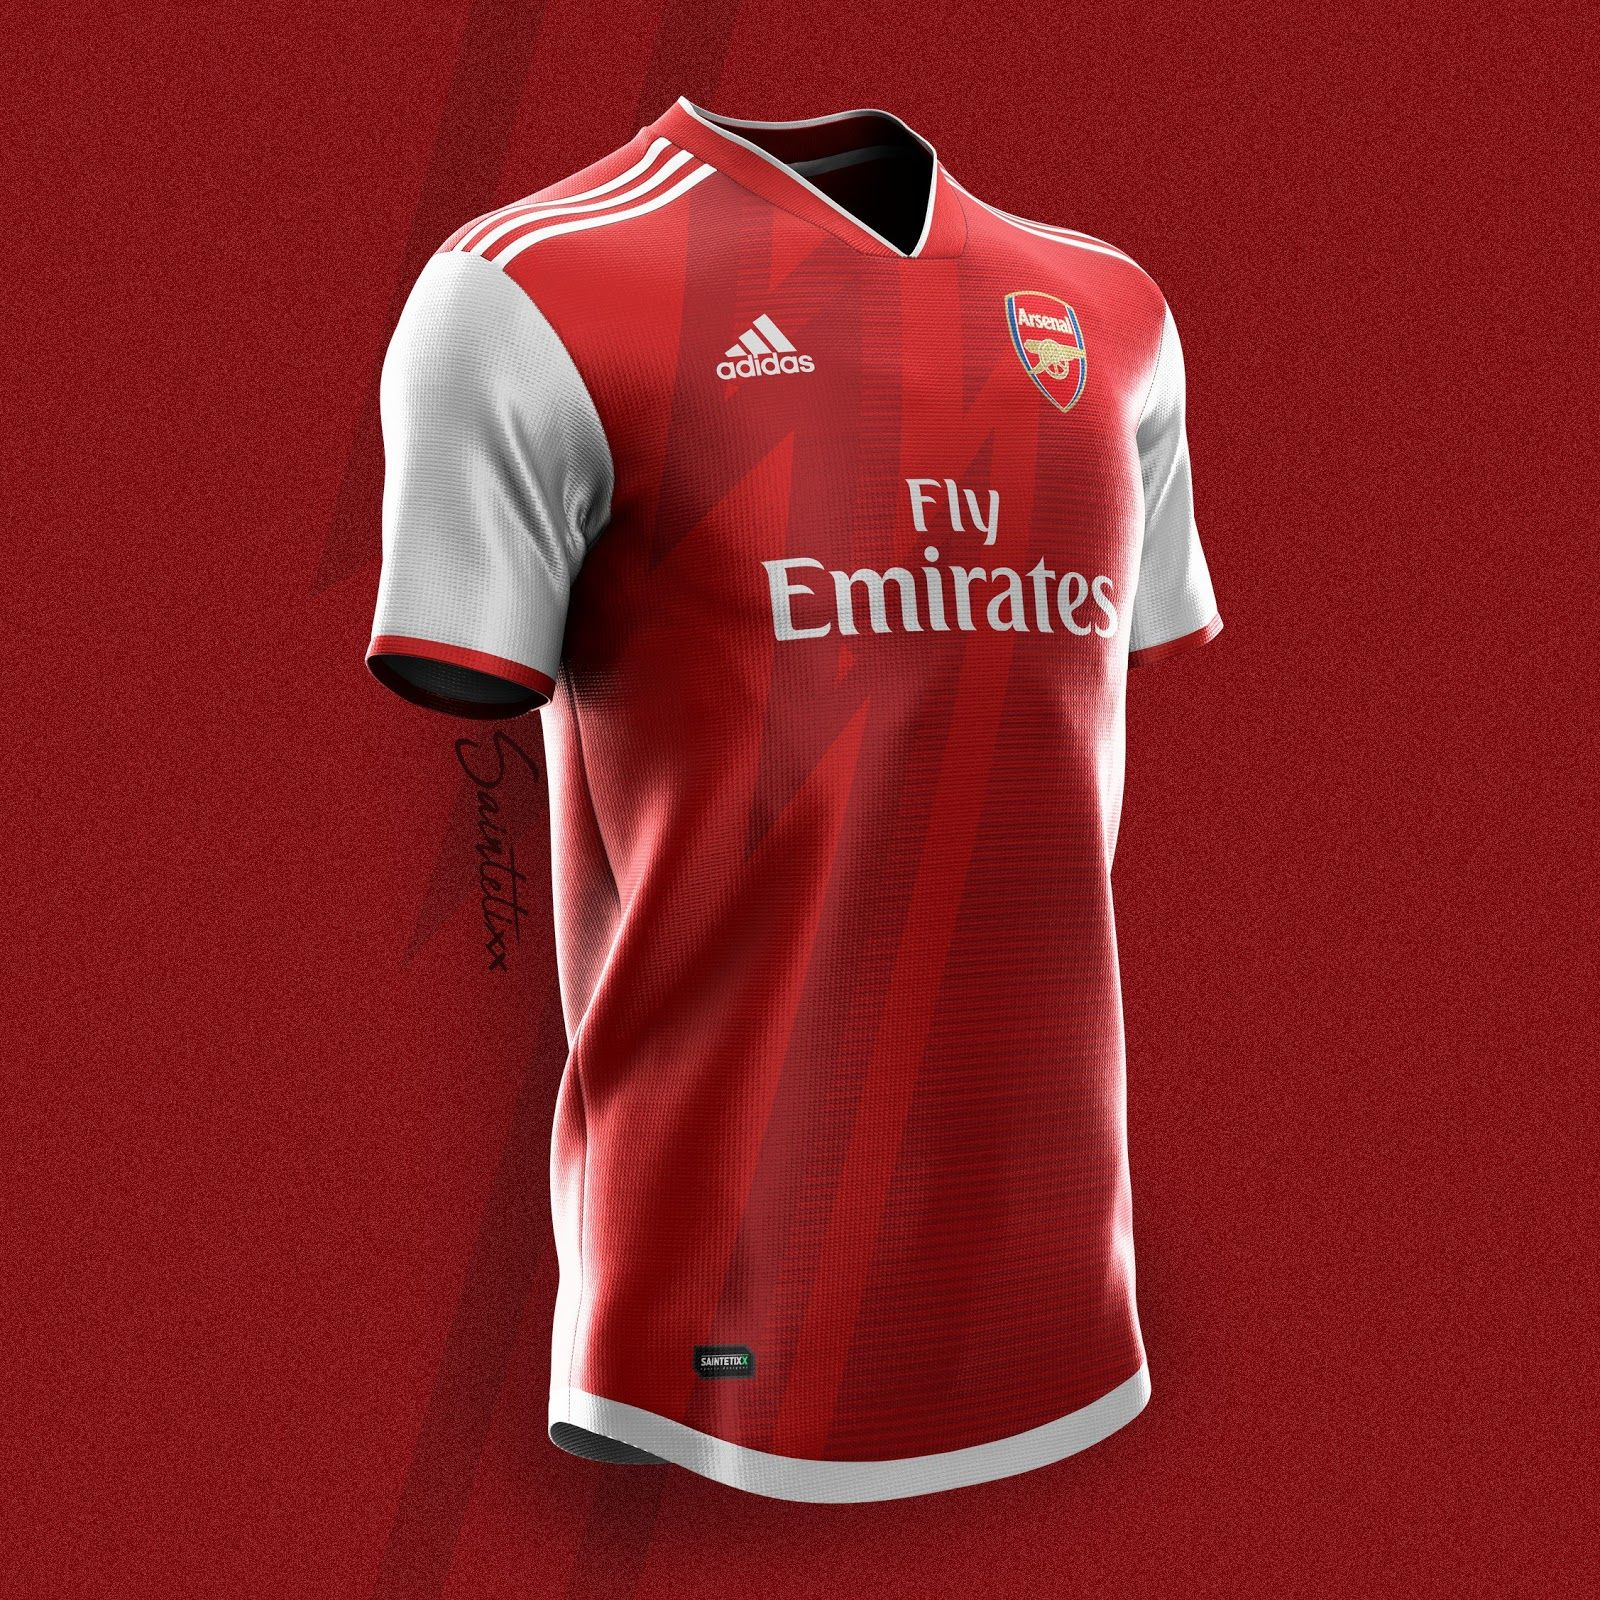 0184c41d6d2 Adidas Arsenal 19-20 Home, Away & Third Kit Concepts by Saintetixx - Footy  Headlines